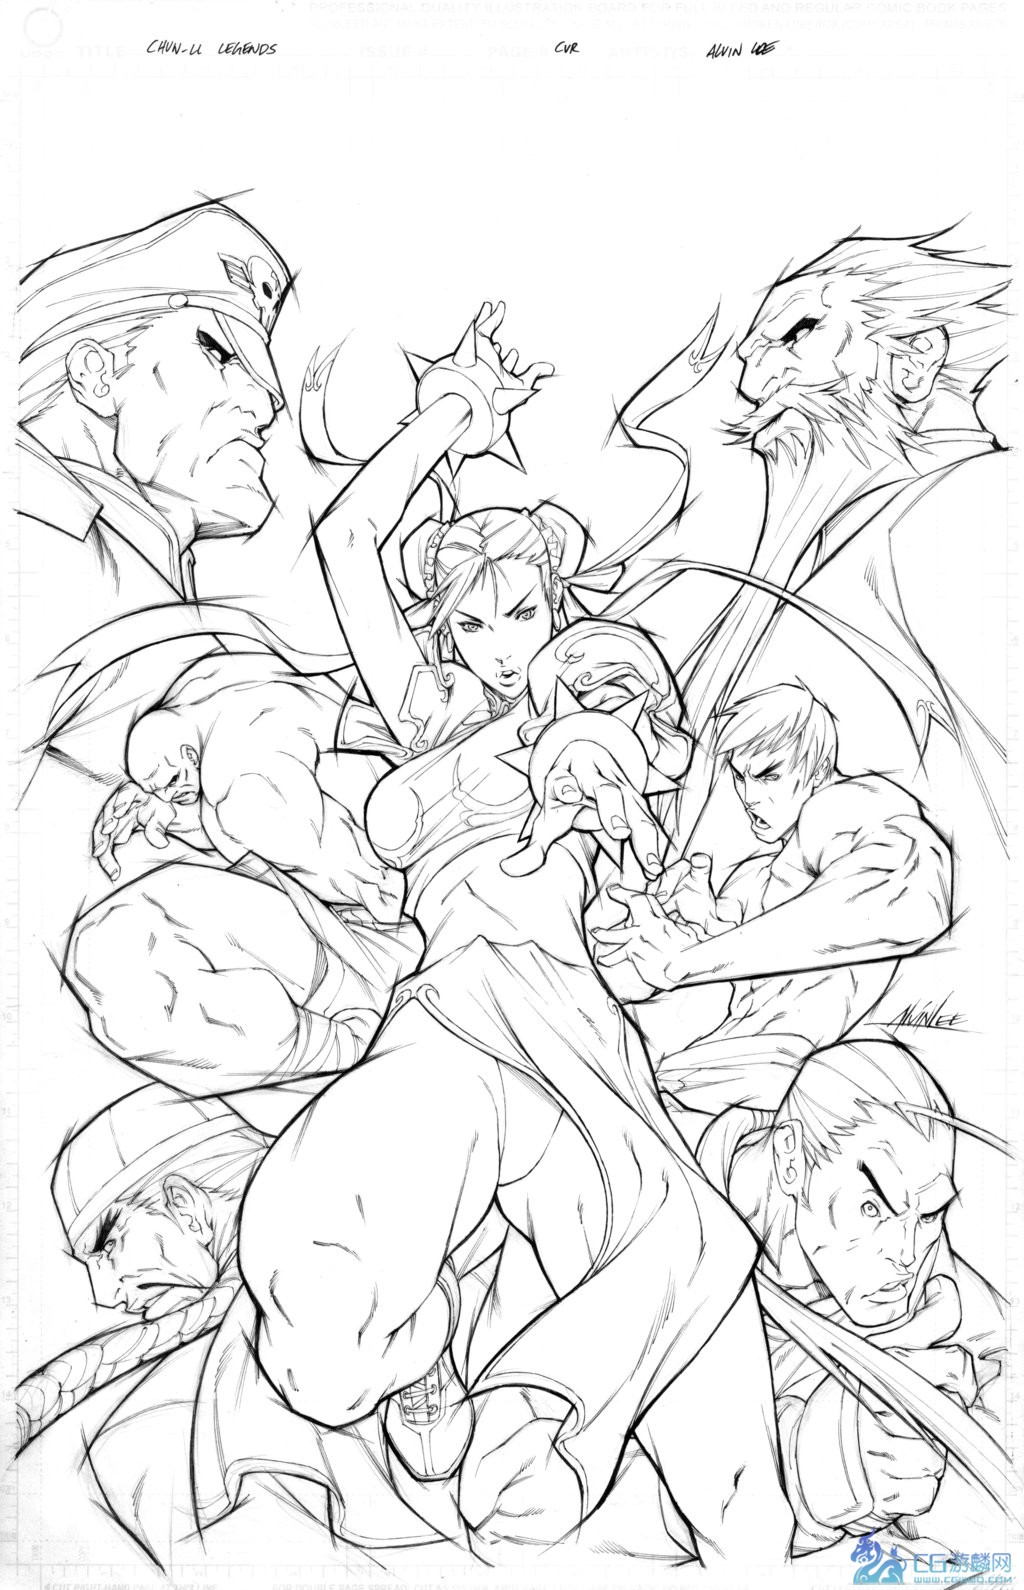 street_fighter__chunli_legends_by_alvinlee.jpg